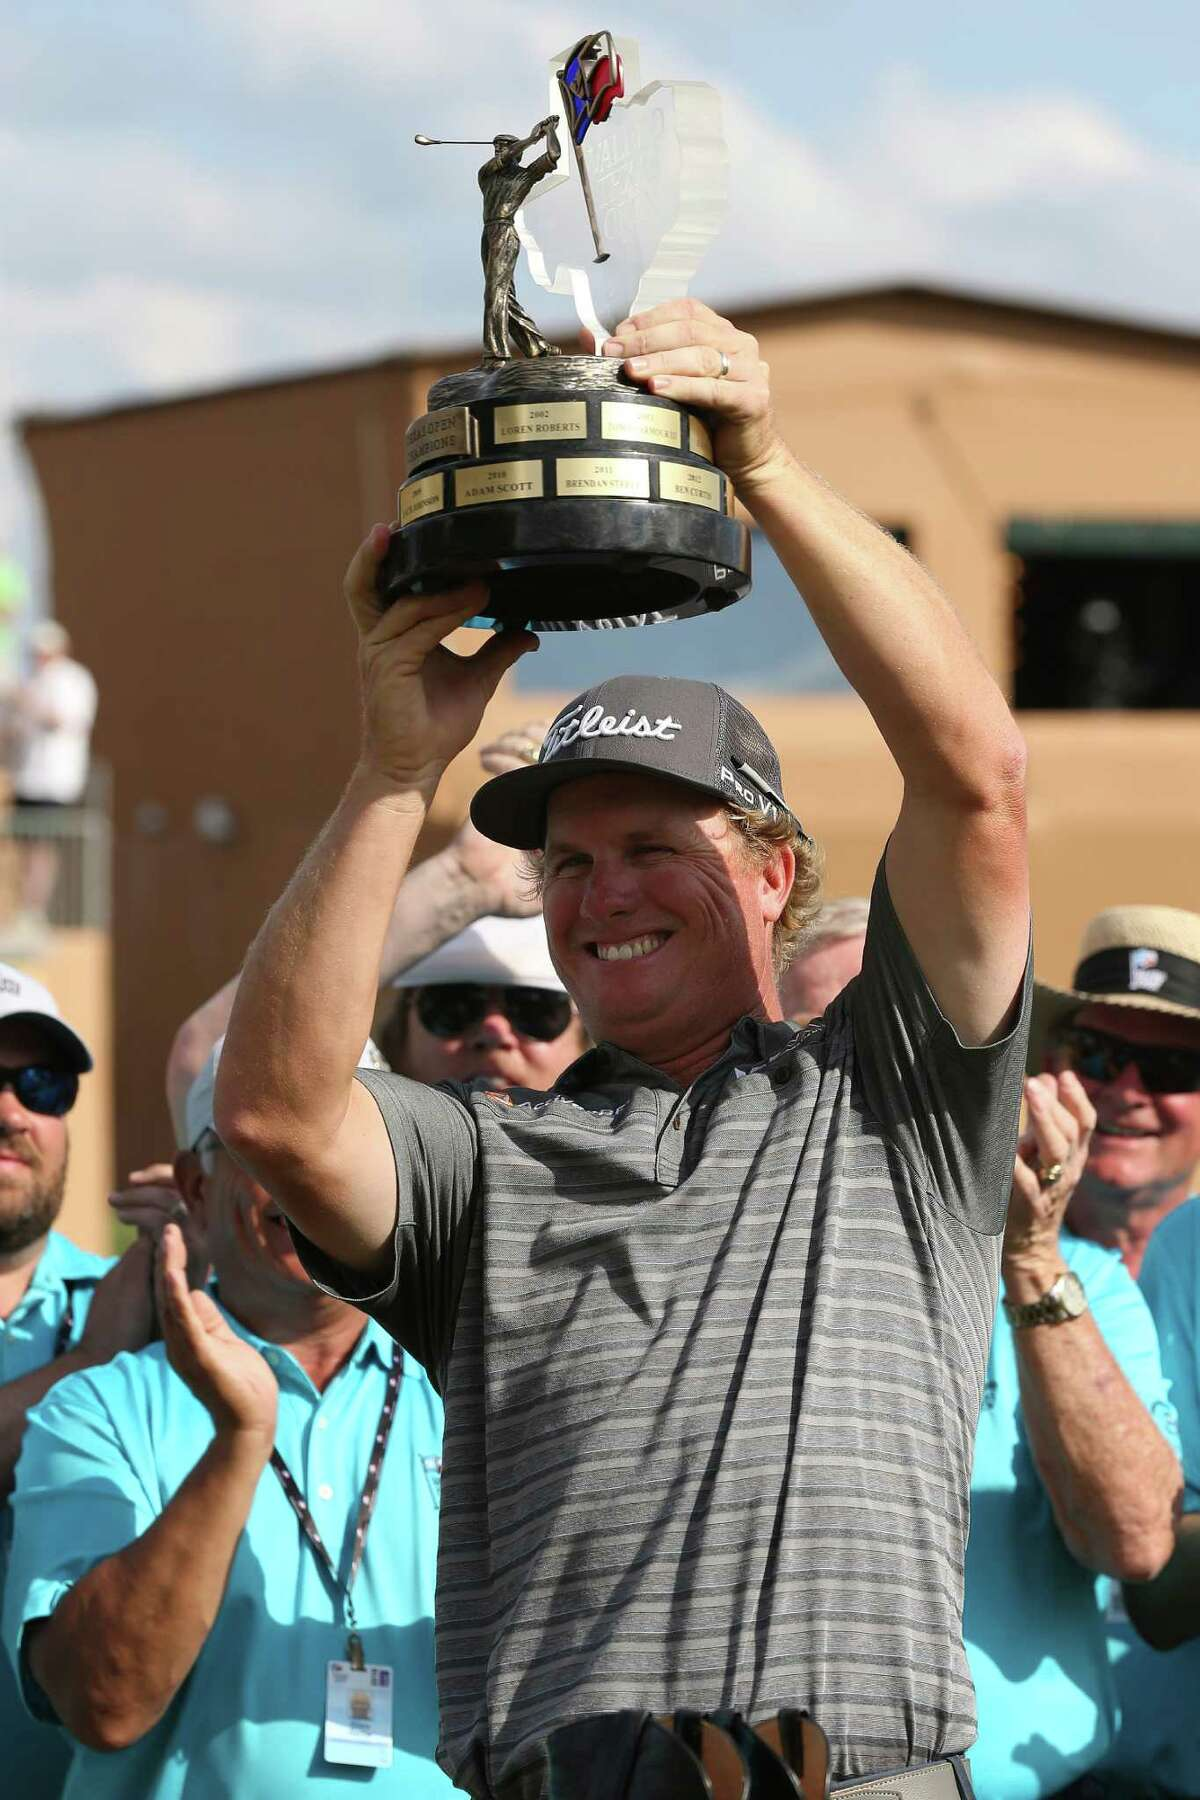 Charley Hoffman, of Las Vegas, Nevada, holds the Valero Texas Open trophy after winning the tournament with a 12-under-par at TPC San Antonio, Sunday, April 24, 2016. Hoffman birdied the 18th hole to win the tournament. Patrick Reed, of Houston, came in second at11-under-par and at third was Chad Collins, of Cloverdale, Indiana at 10-under-par.